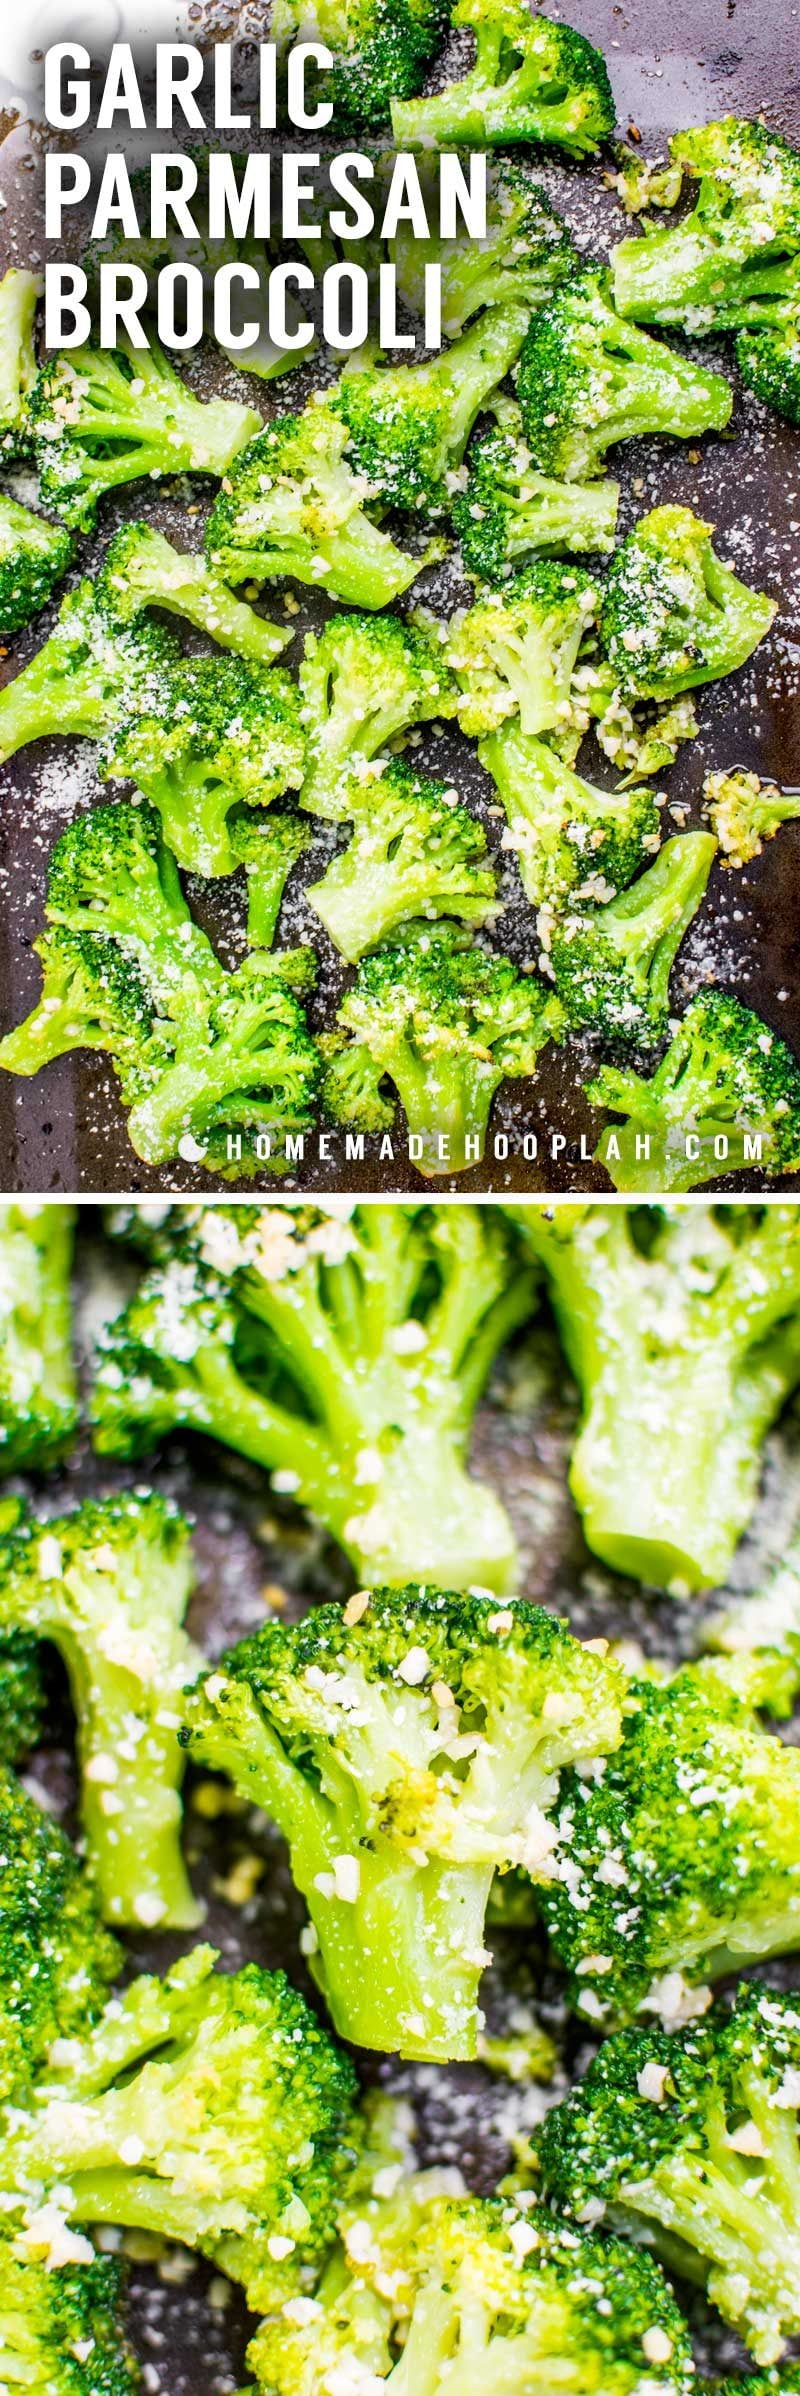 Baked parmesan garlic broccoli.